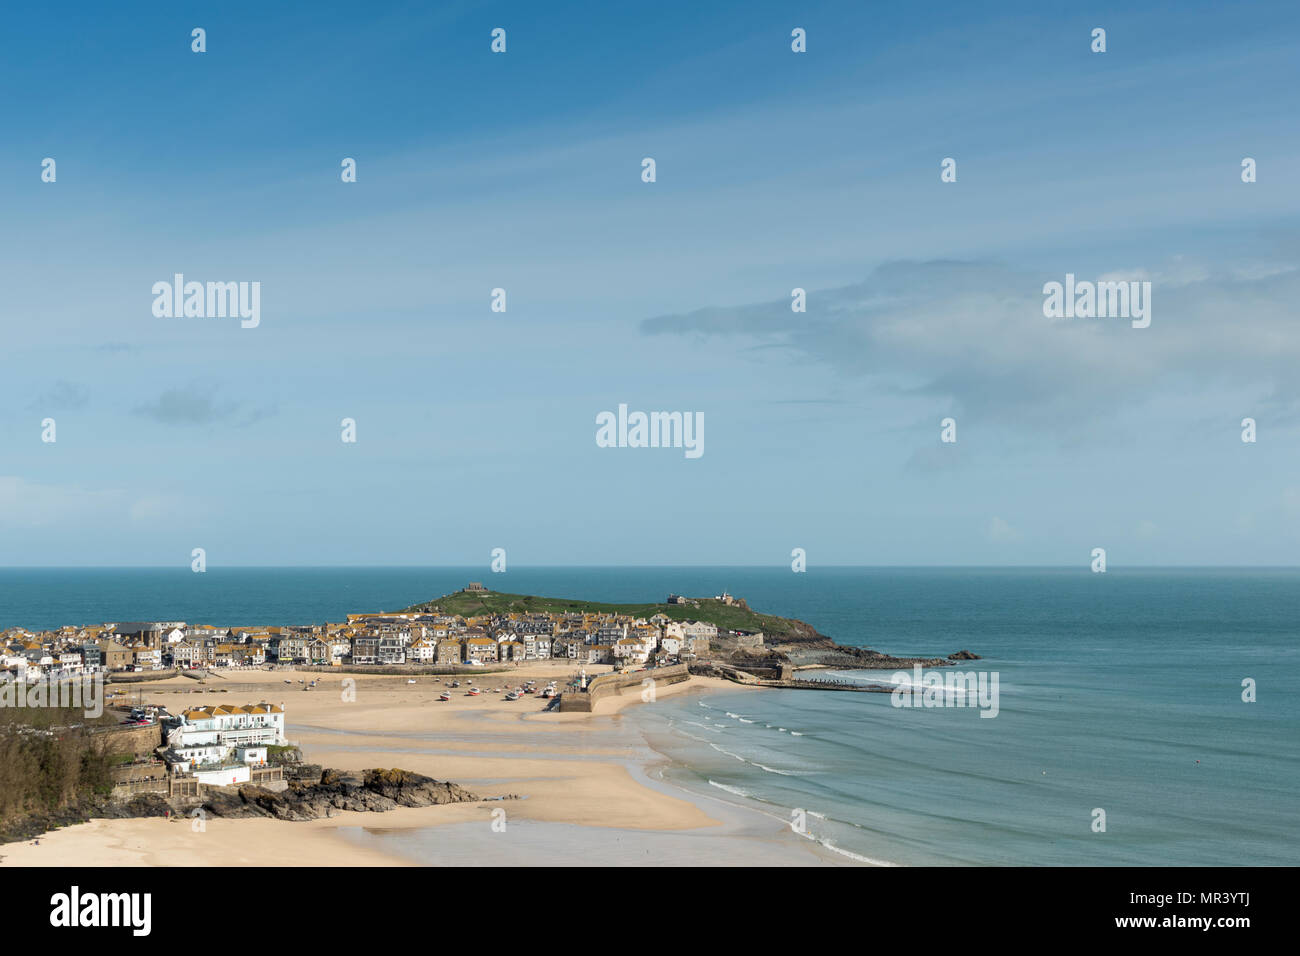 Views from the south west coast path across Porthminster towards St Ives, Cornwall, UK Stock Photo